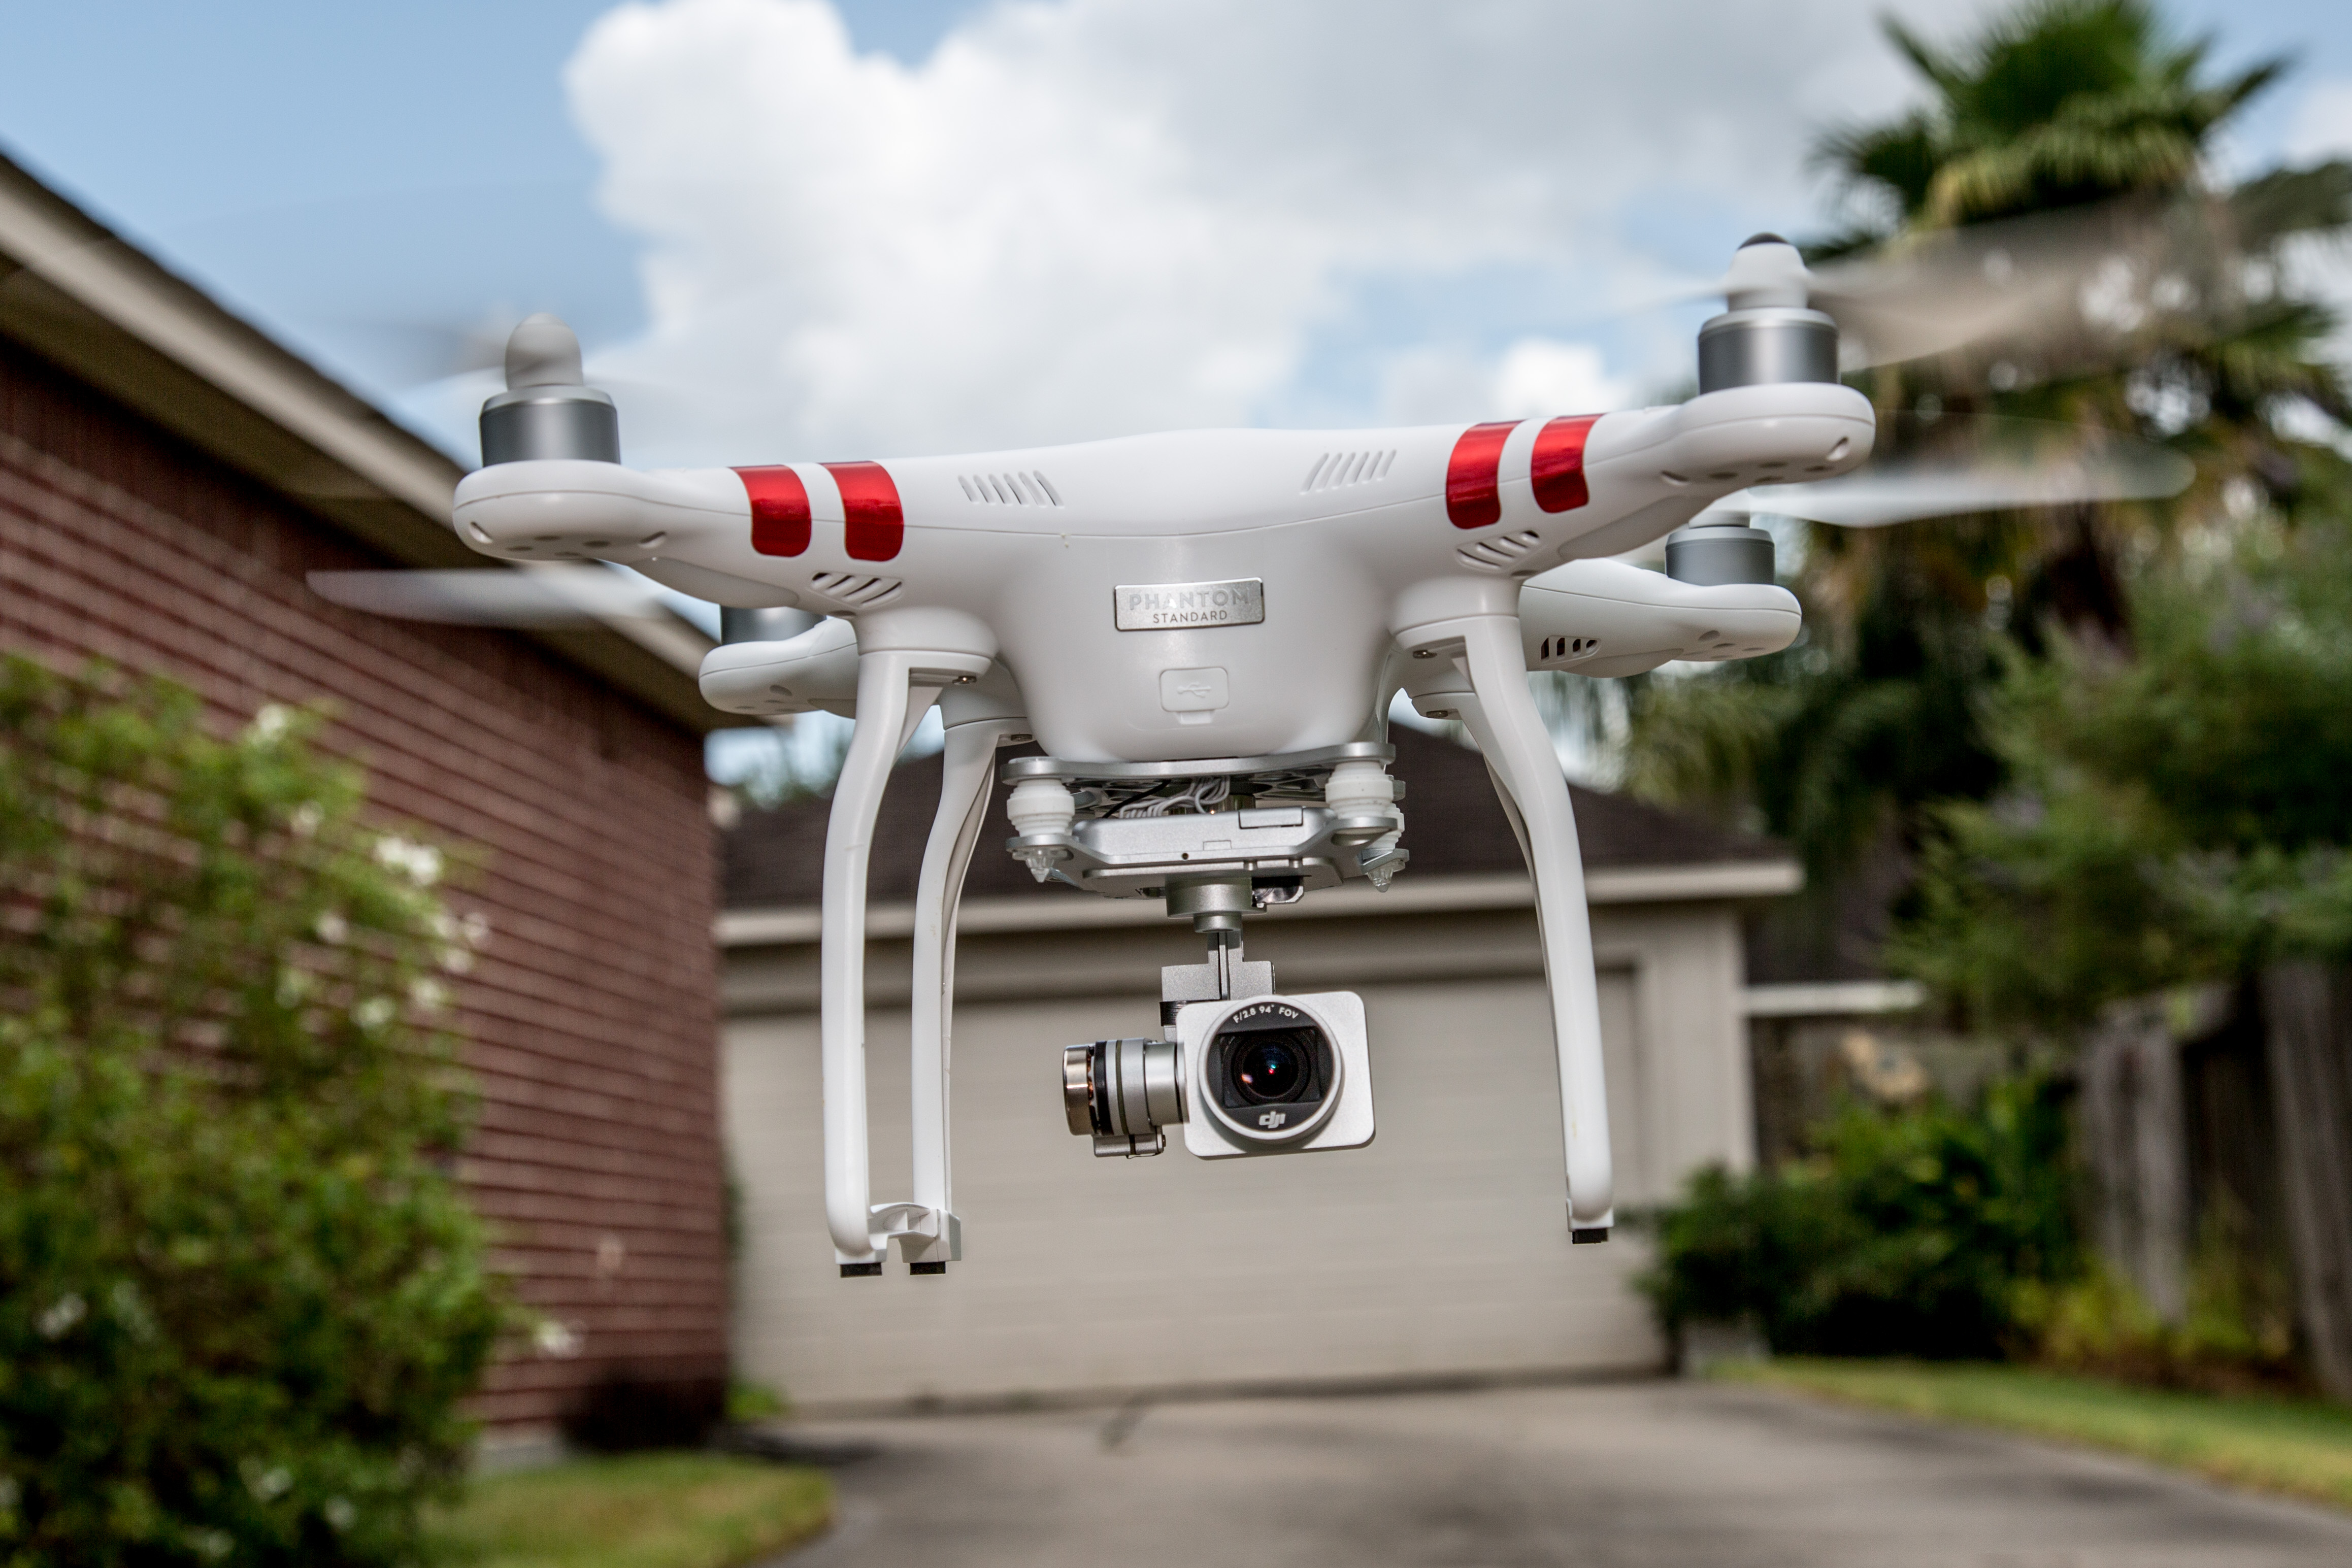 Flying DJI's new Phantom 3 Standard—better software, better